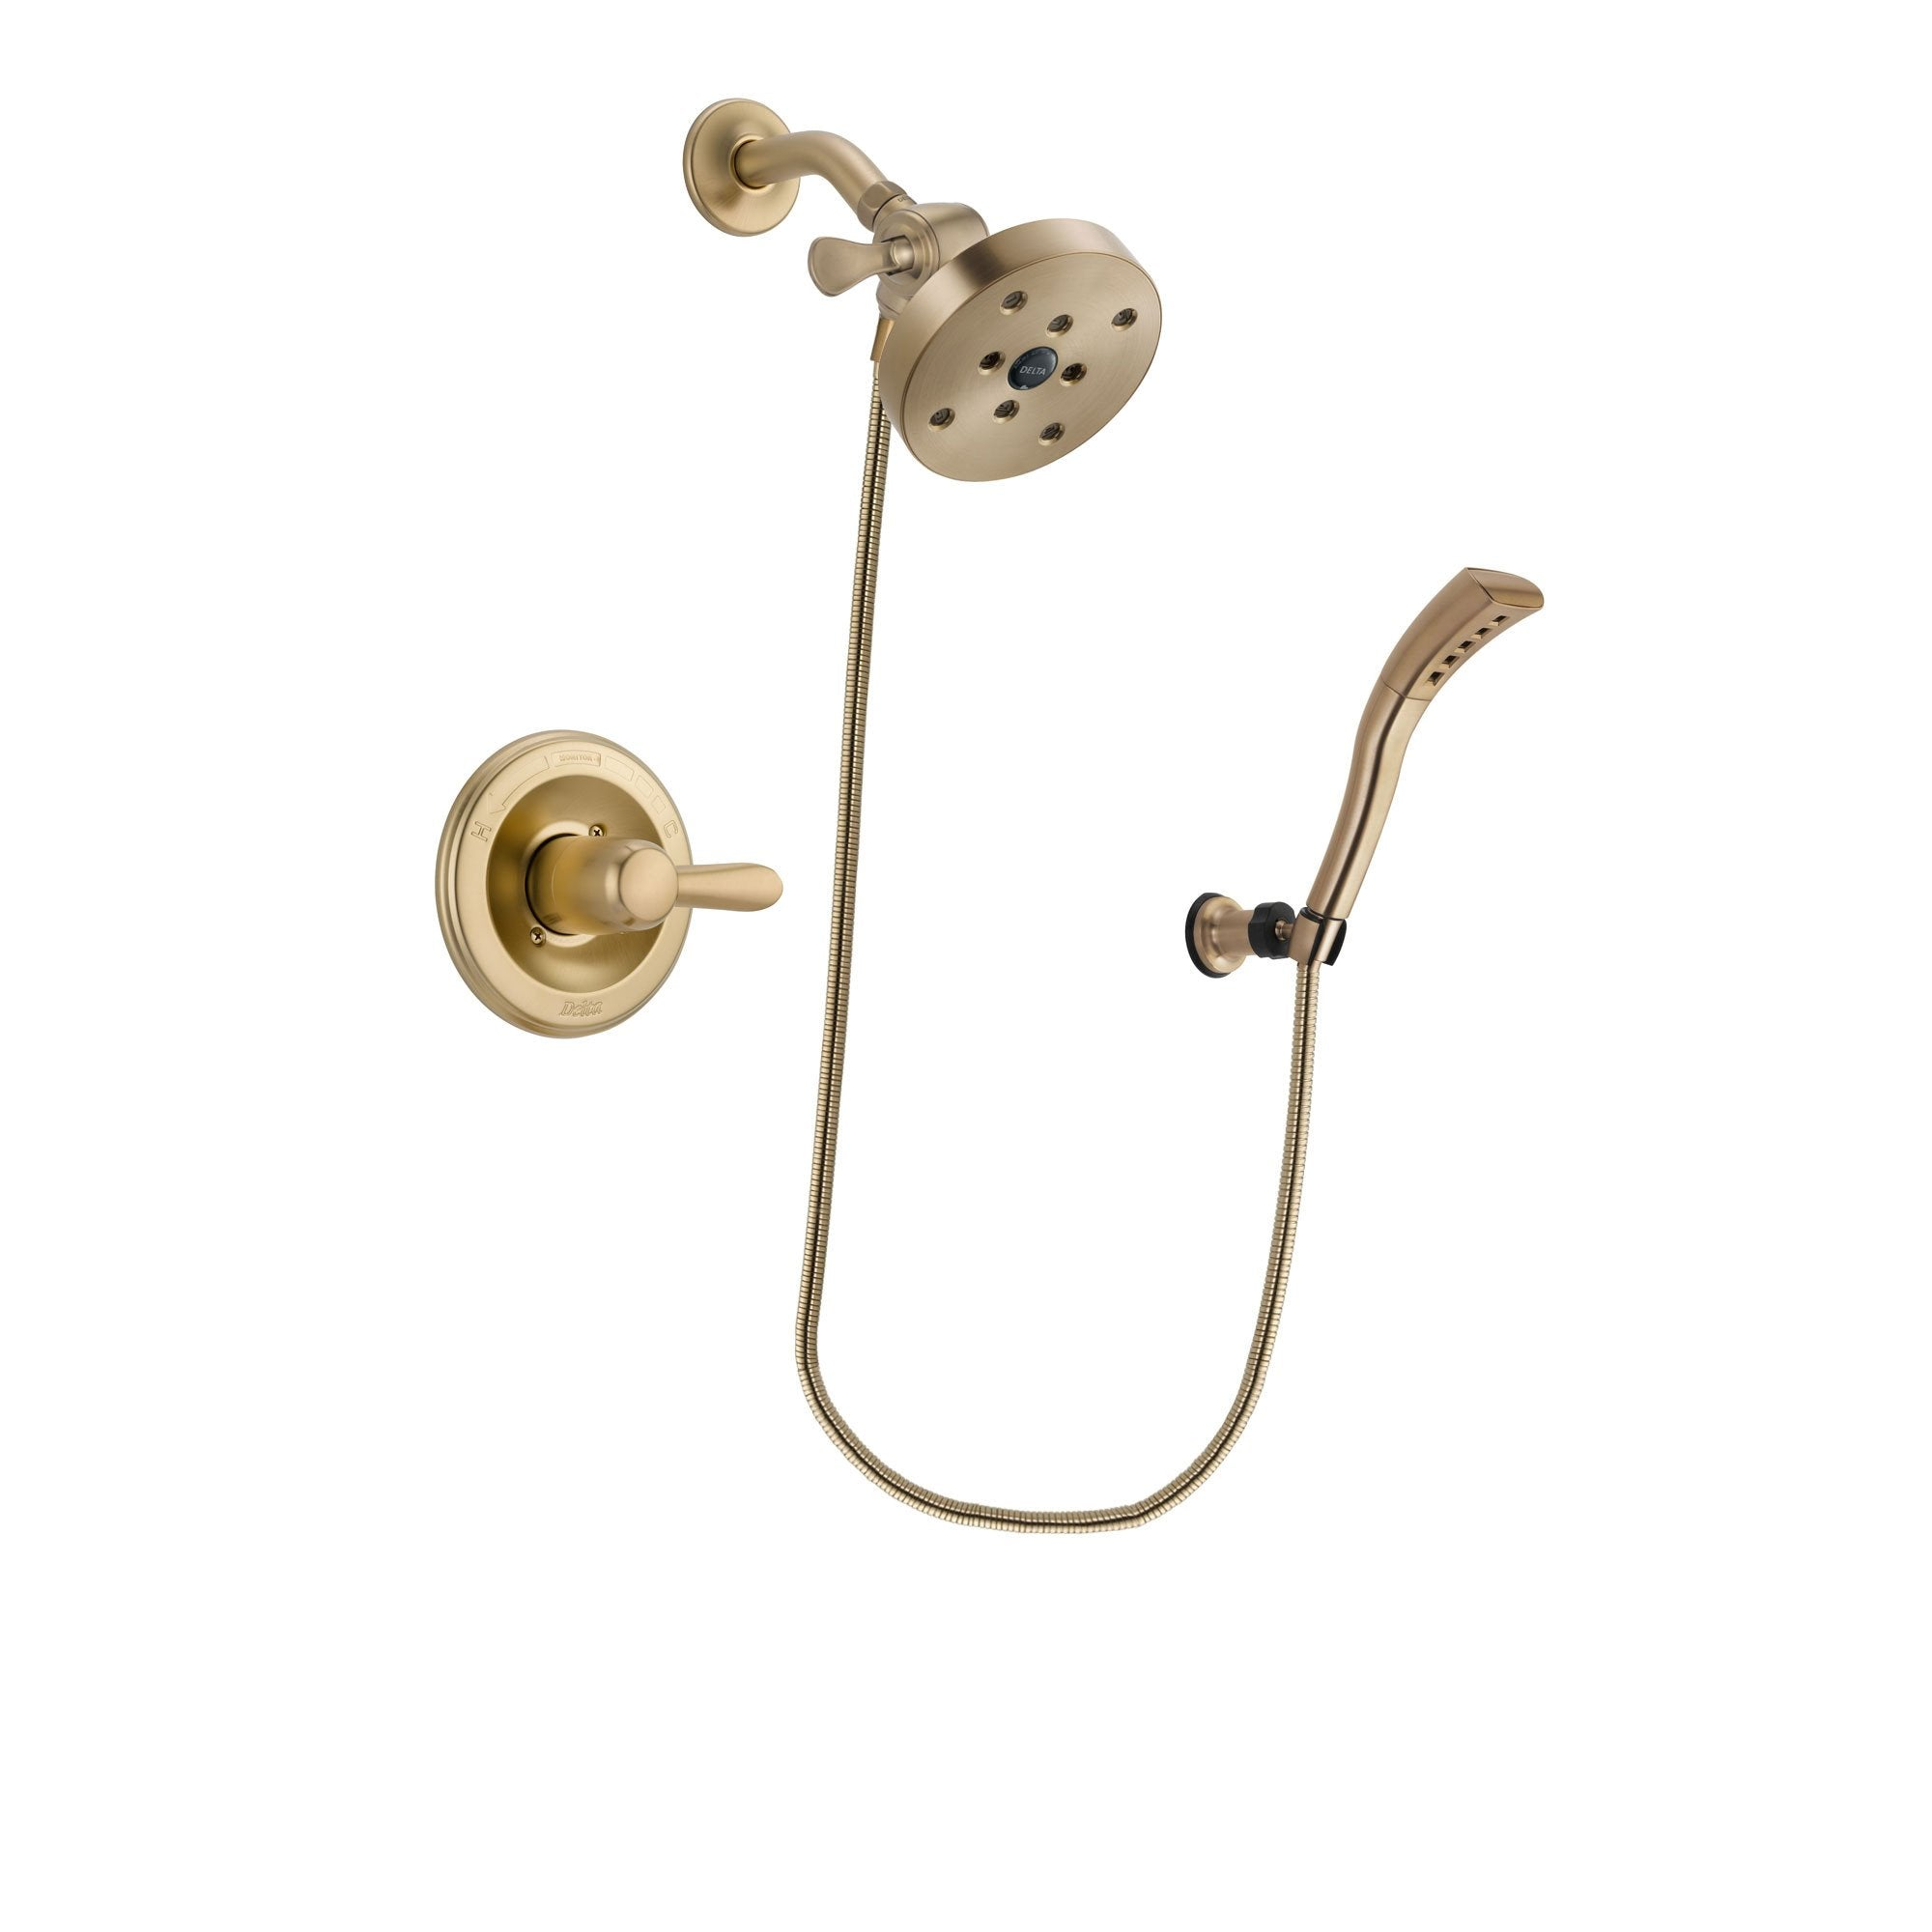 Delta Lahara Champagne Bronze Finish Shower Faucet System Package with 5-1/2 inch Showerhead and Modern Wall Mount Personal Handheld Shower Spray Includes Rough-in Valve DSP3716V